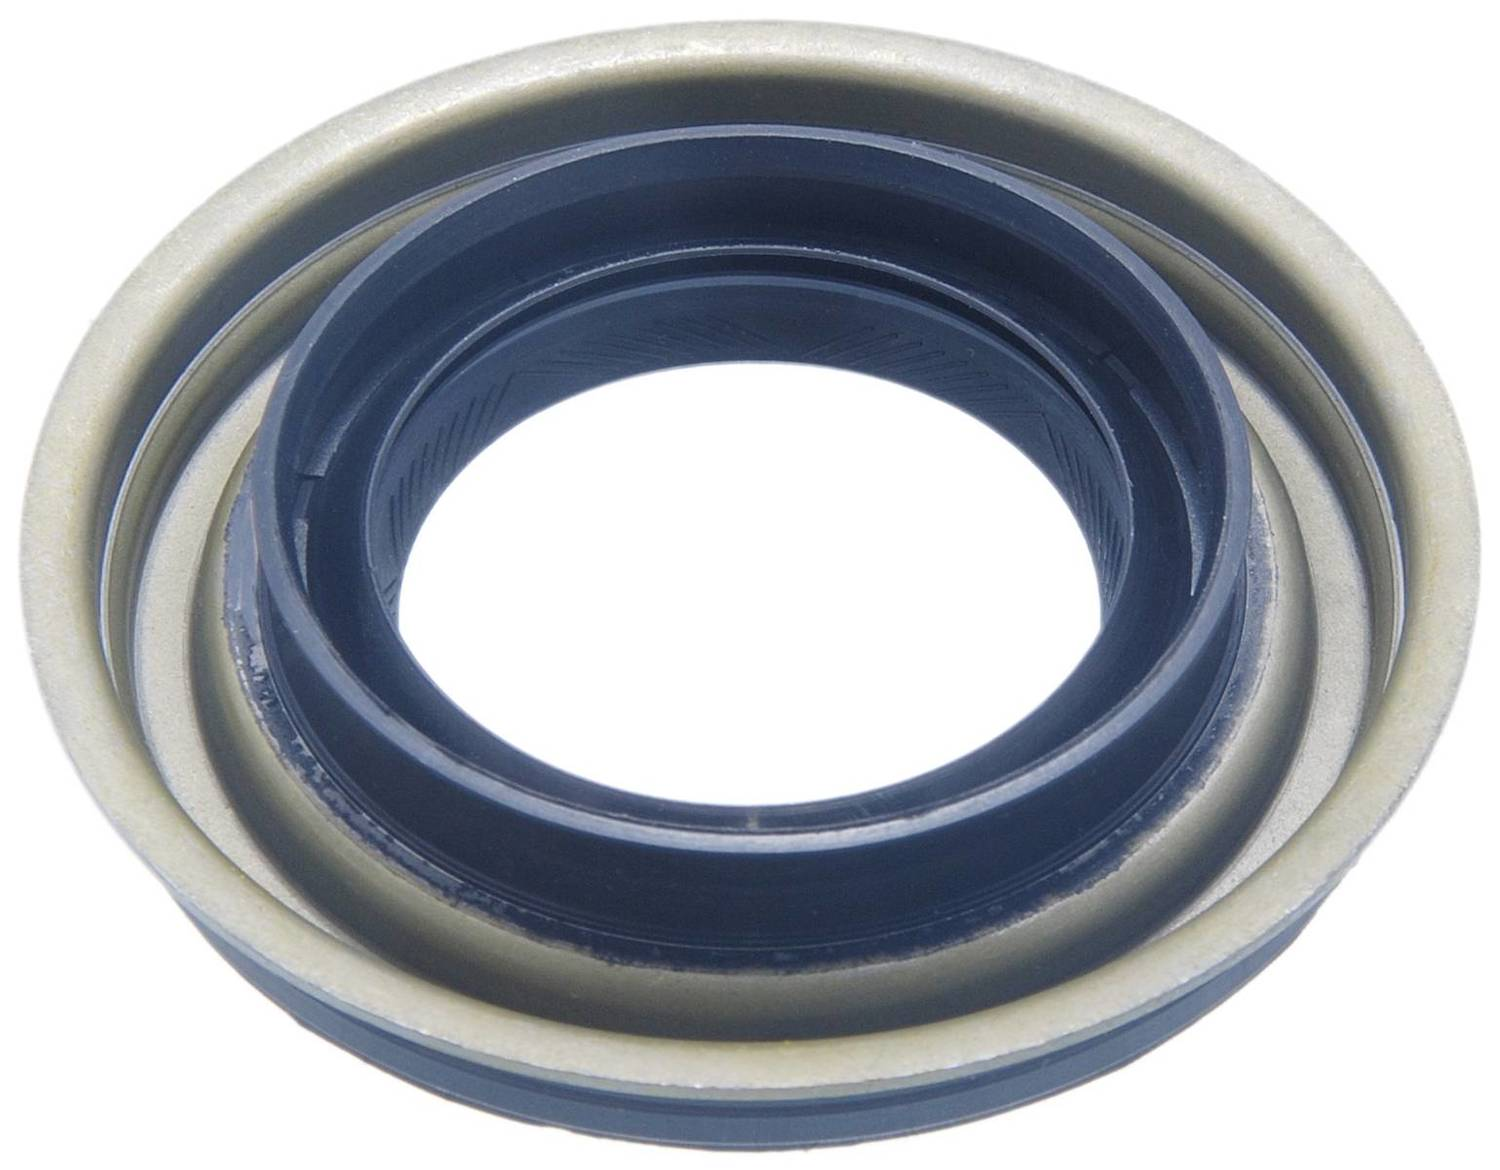 Febest 2008 Nissan Titan - Oil Seals FEBEST # 95JES-43781011C OEM # 38342-8S110 at Sears.com